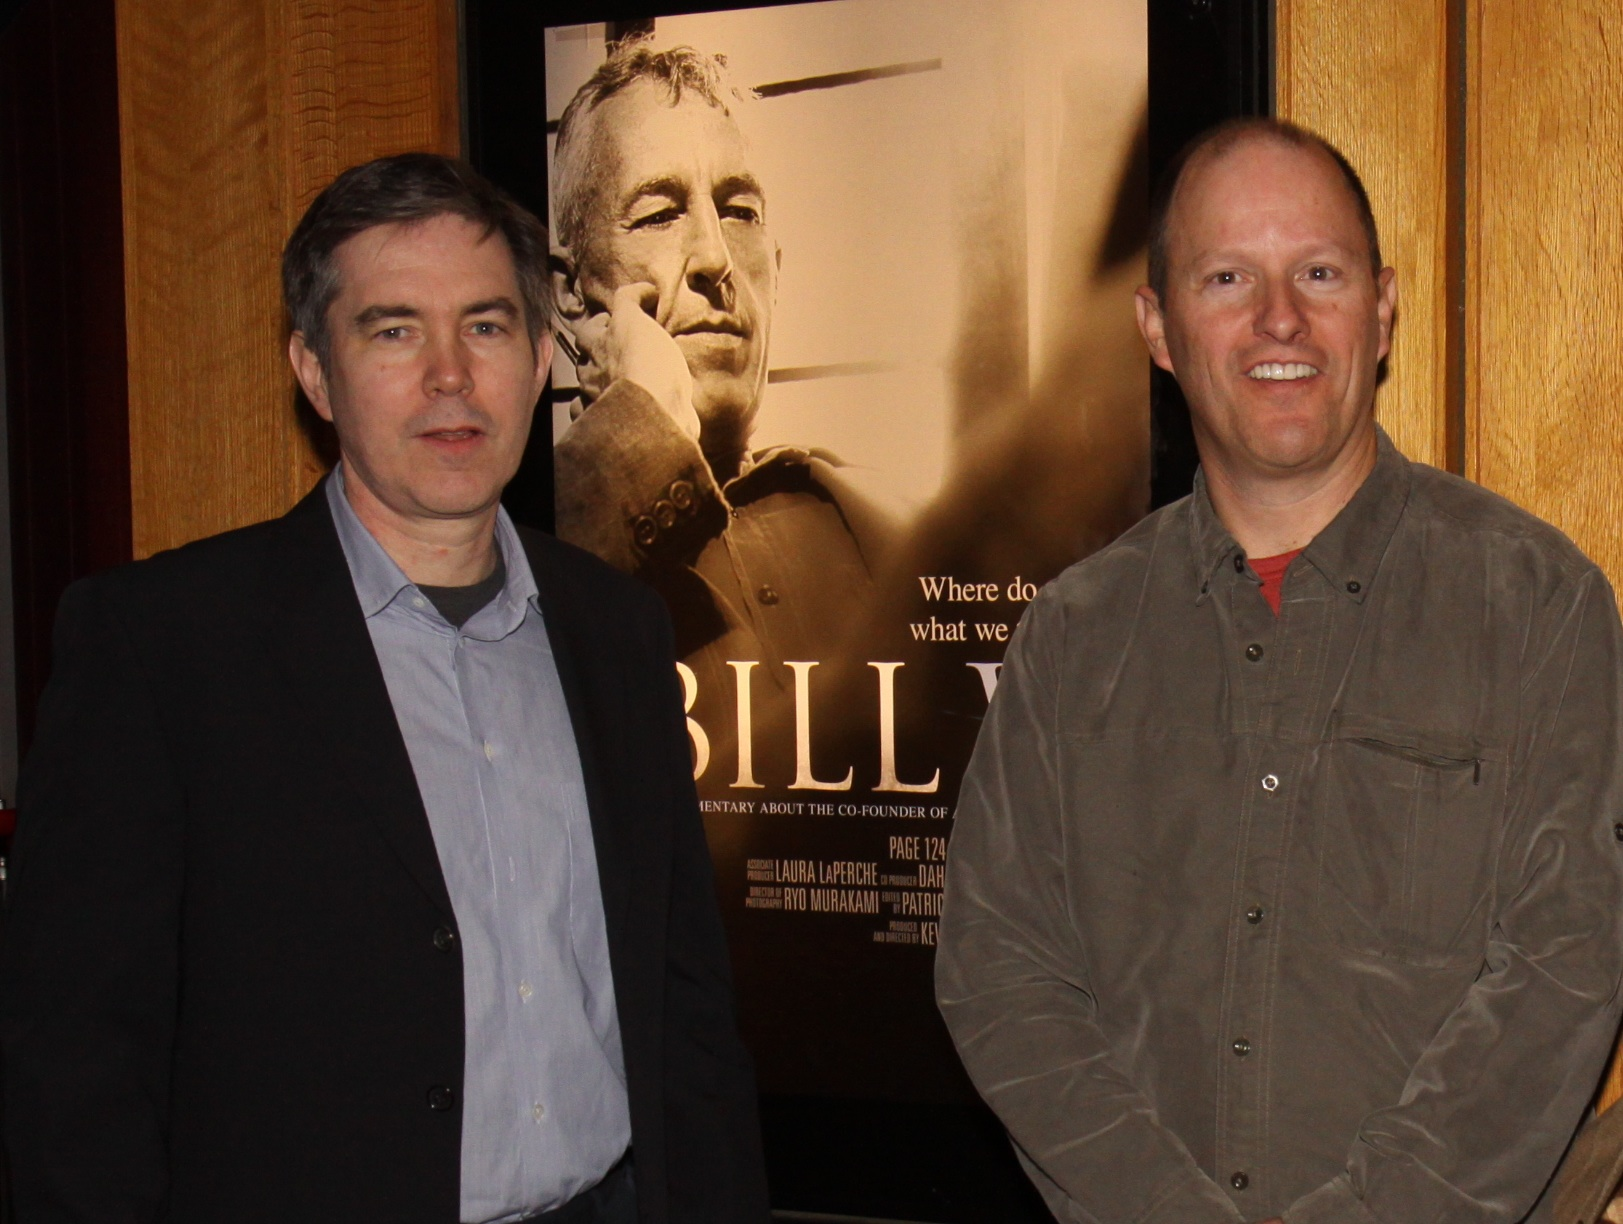 Producers Kevin Hanlon and Dan CarracinoFirst-time filmmakers, Kevin and Dan, took eight years to make their BILL W. documentary ...